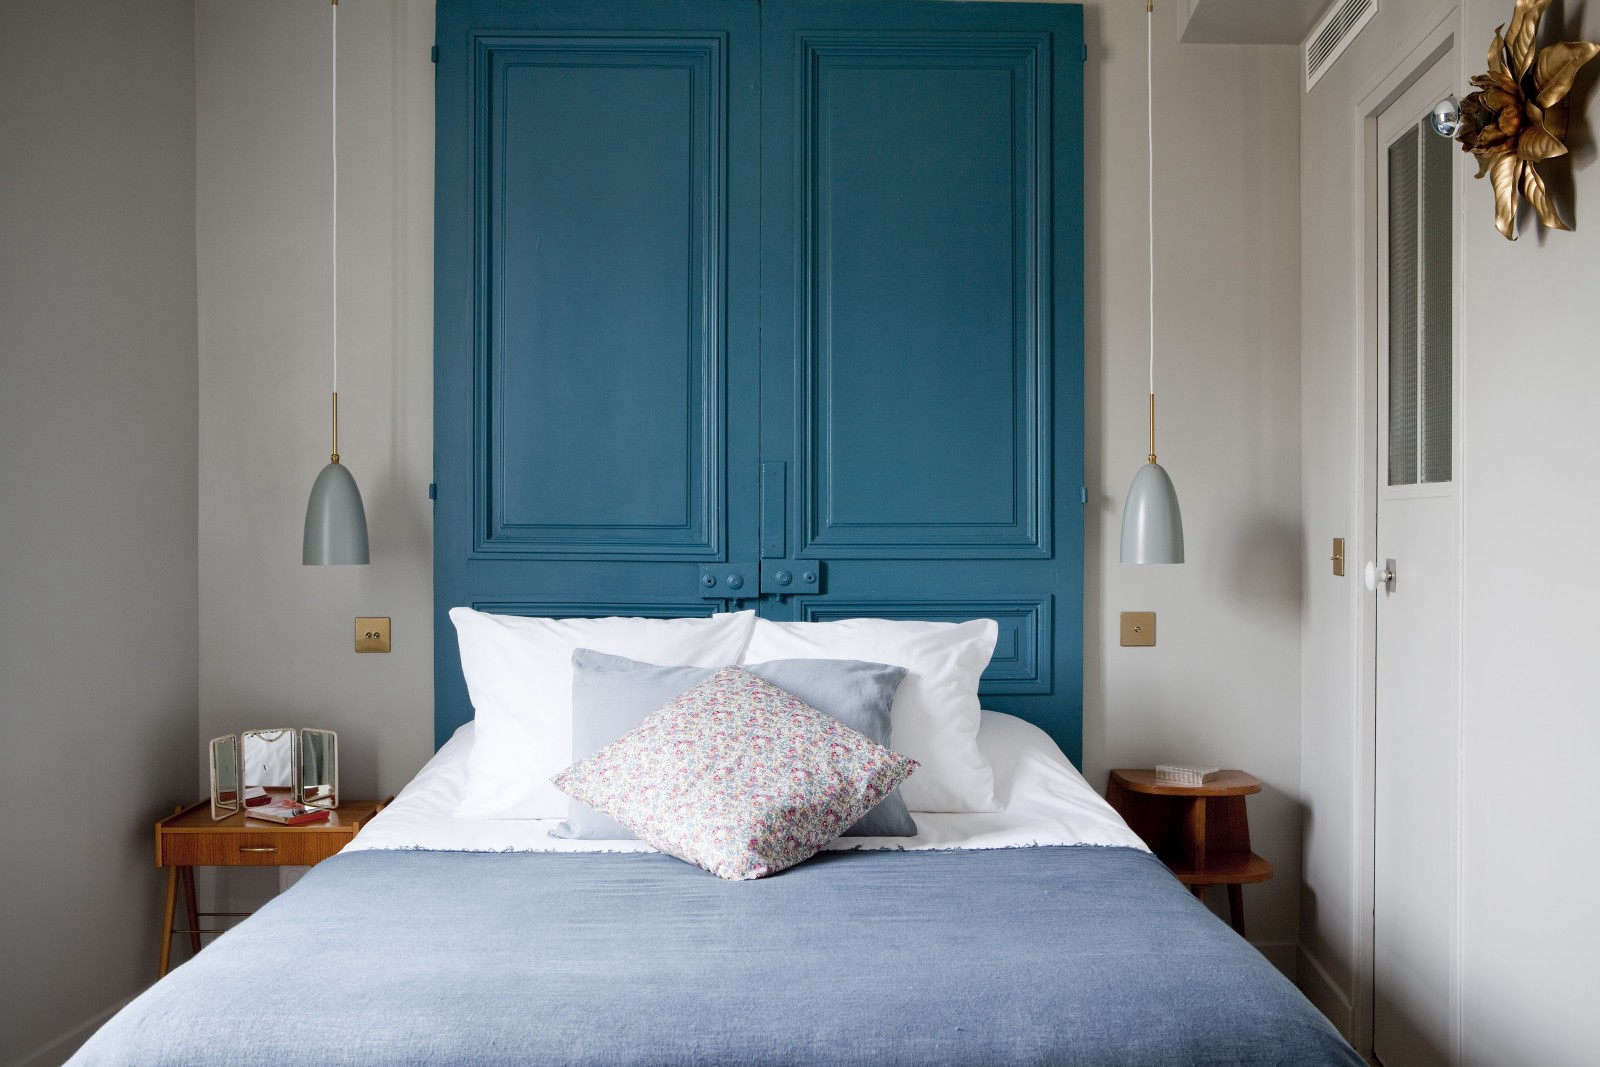 the double chambre starts at an affordable (and unheard of for paris) price of  9